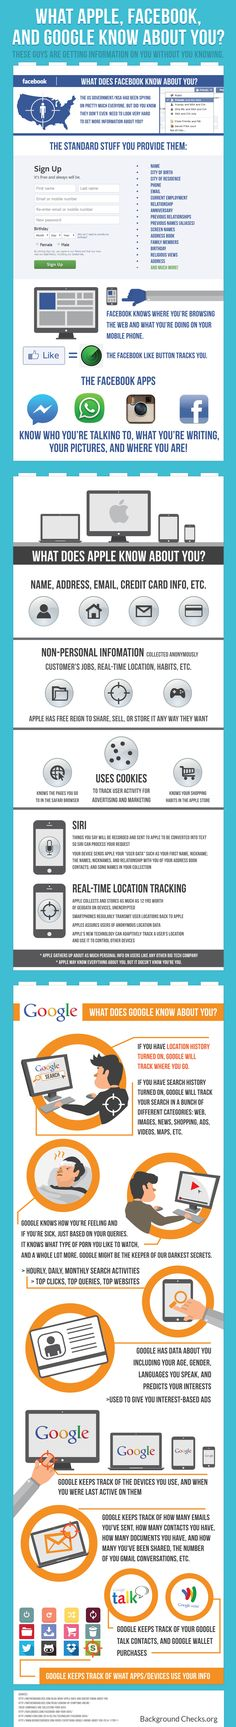 INFOGRAPHIC: HOW GOOGLE, FACEBOOK and APPLE TRACK EVERYTHING ABOUT YOU | Background Checks.org